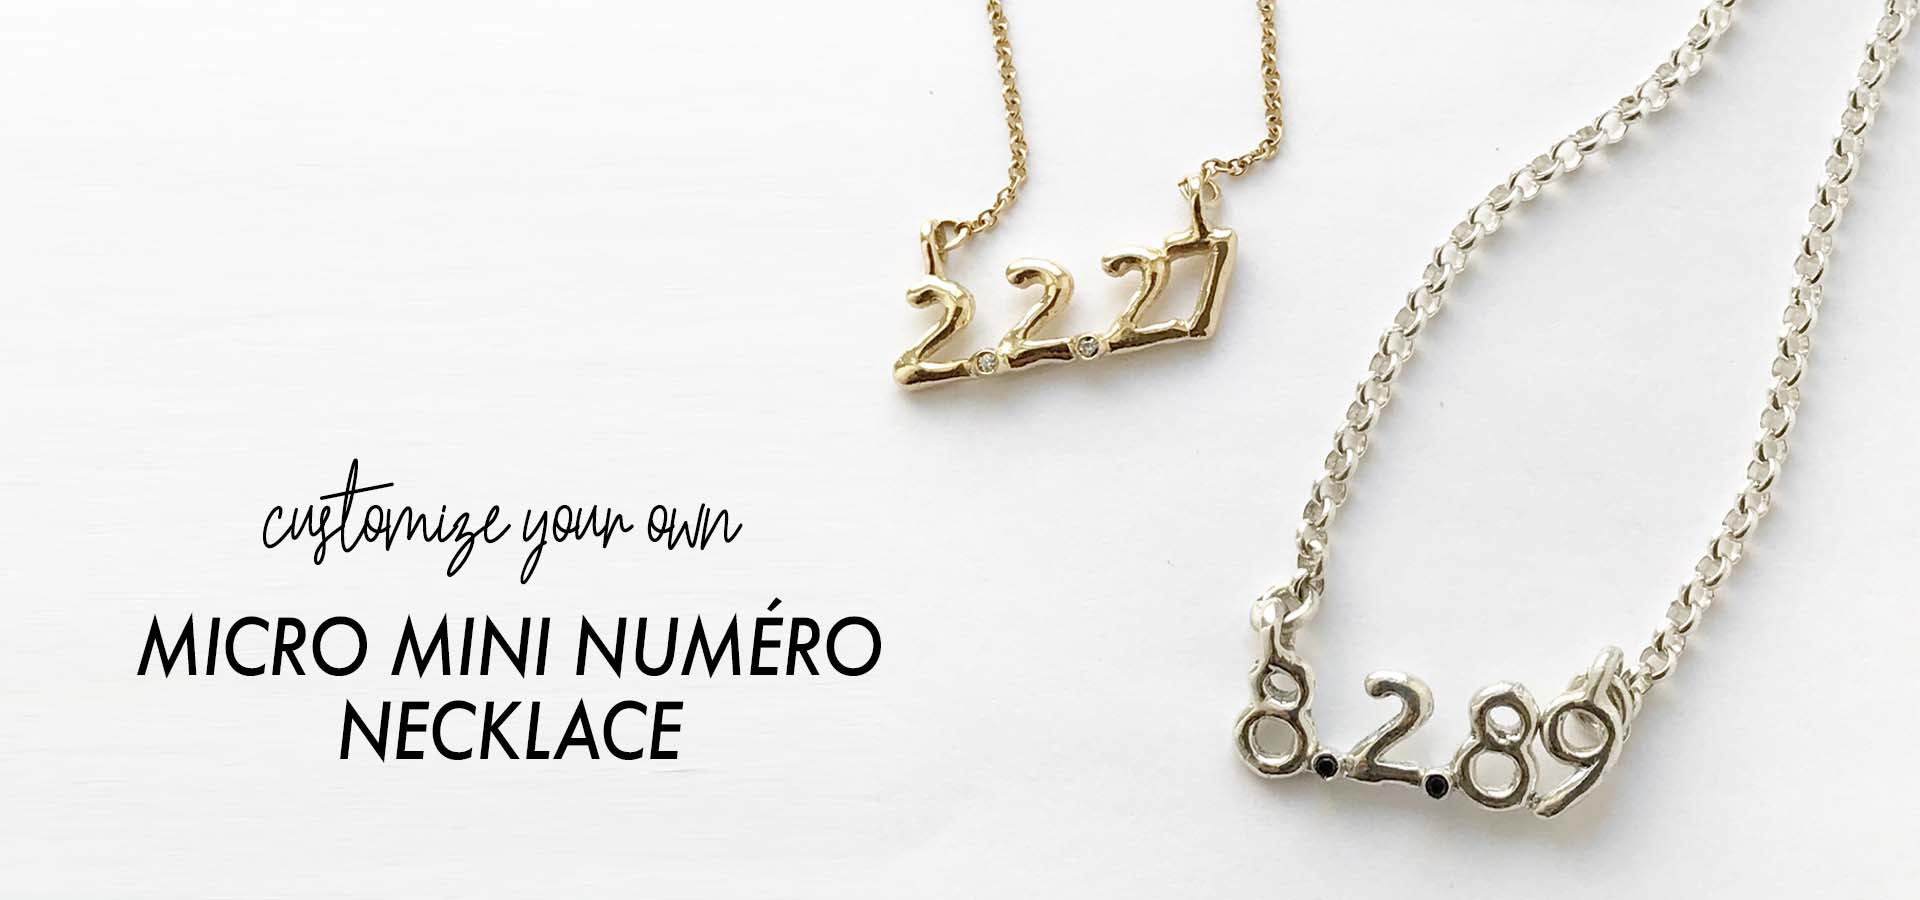 customize micro mini numero necklace.jpg